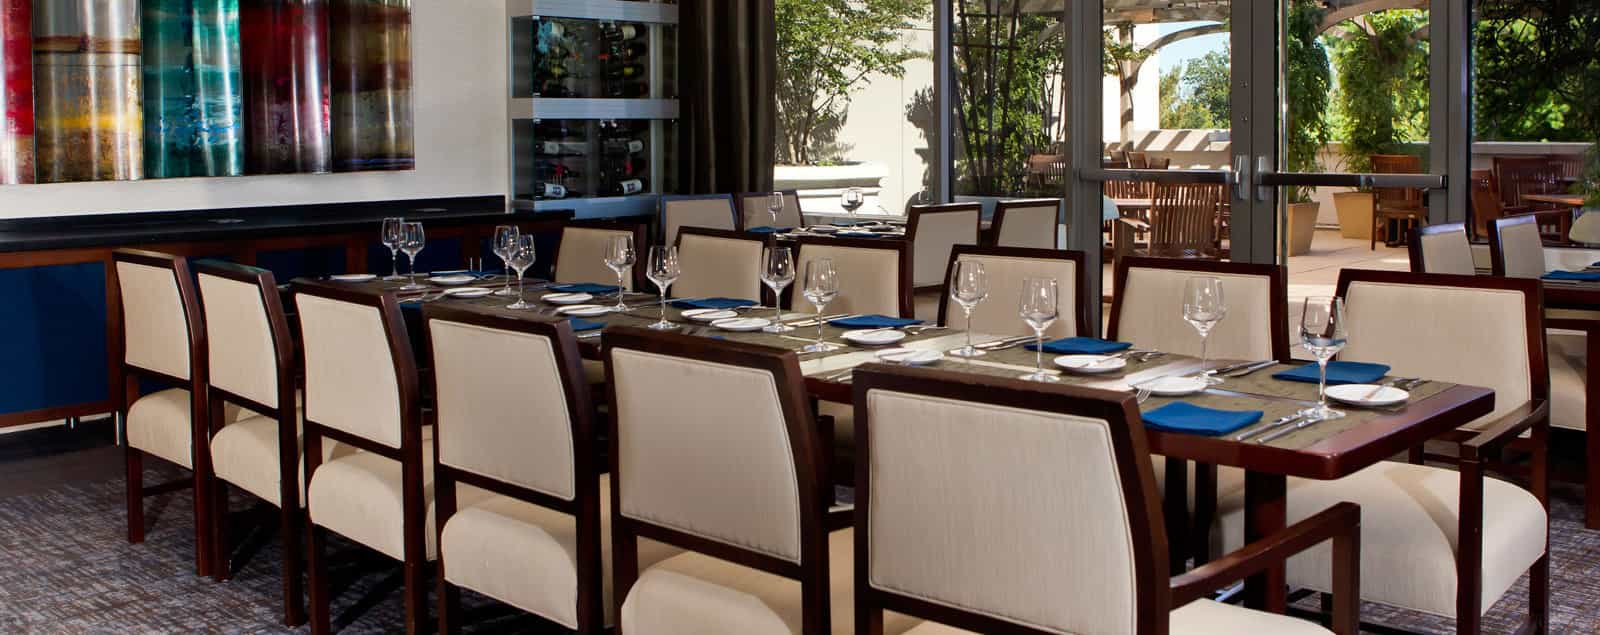 Private Dining & Private Room Restaurants | Fairfax County, Virginia